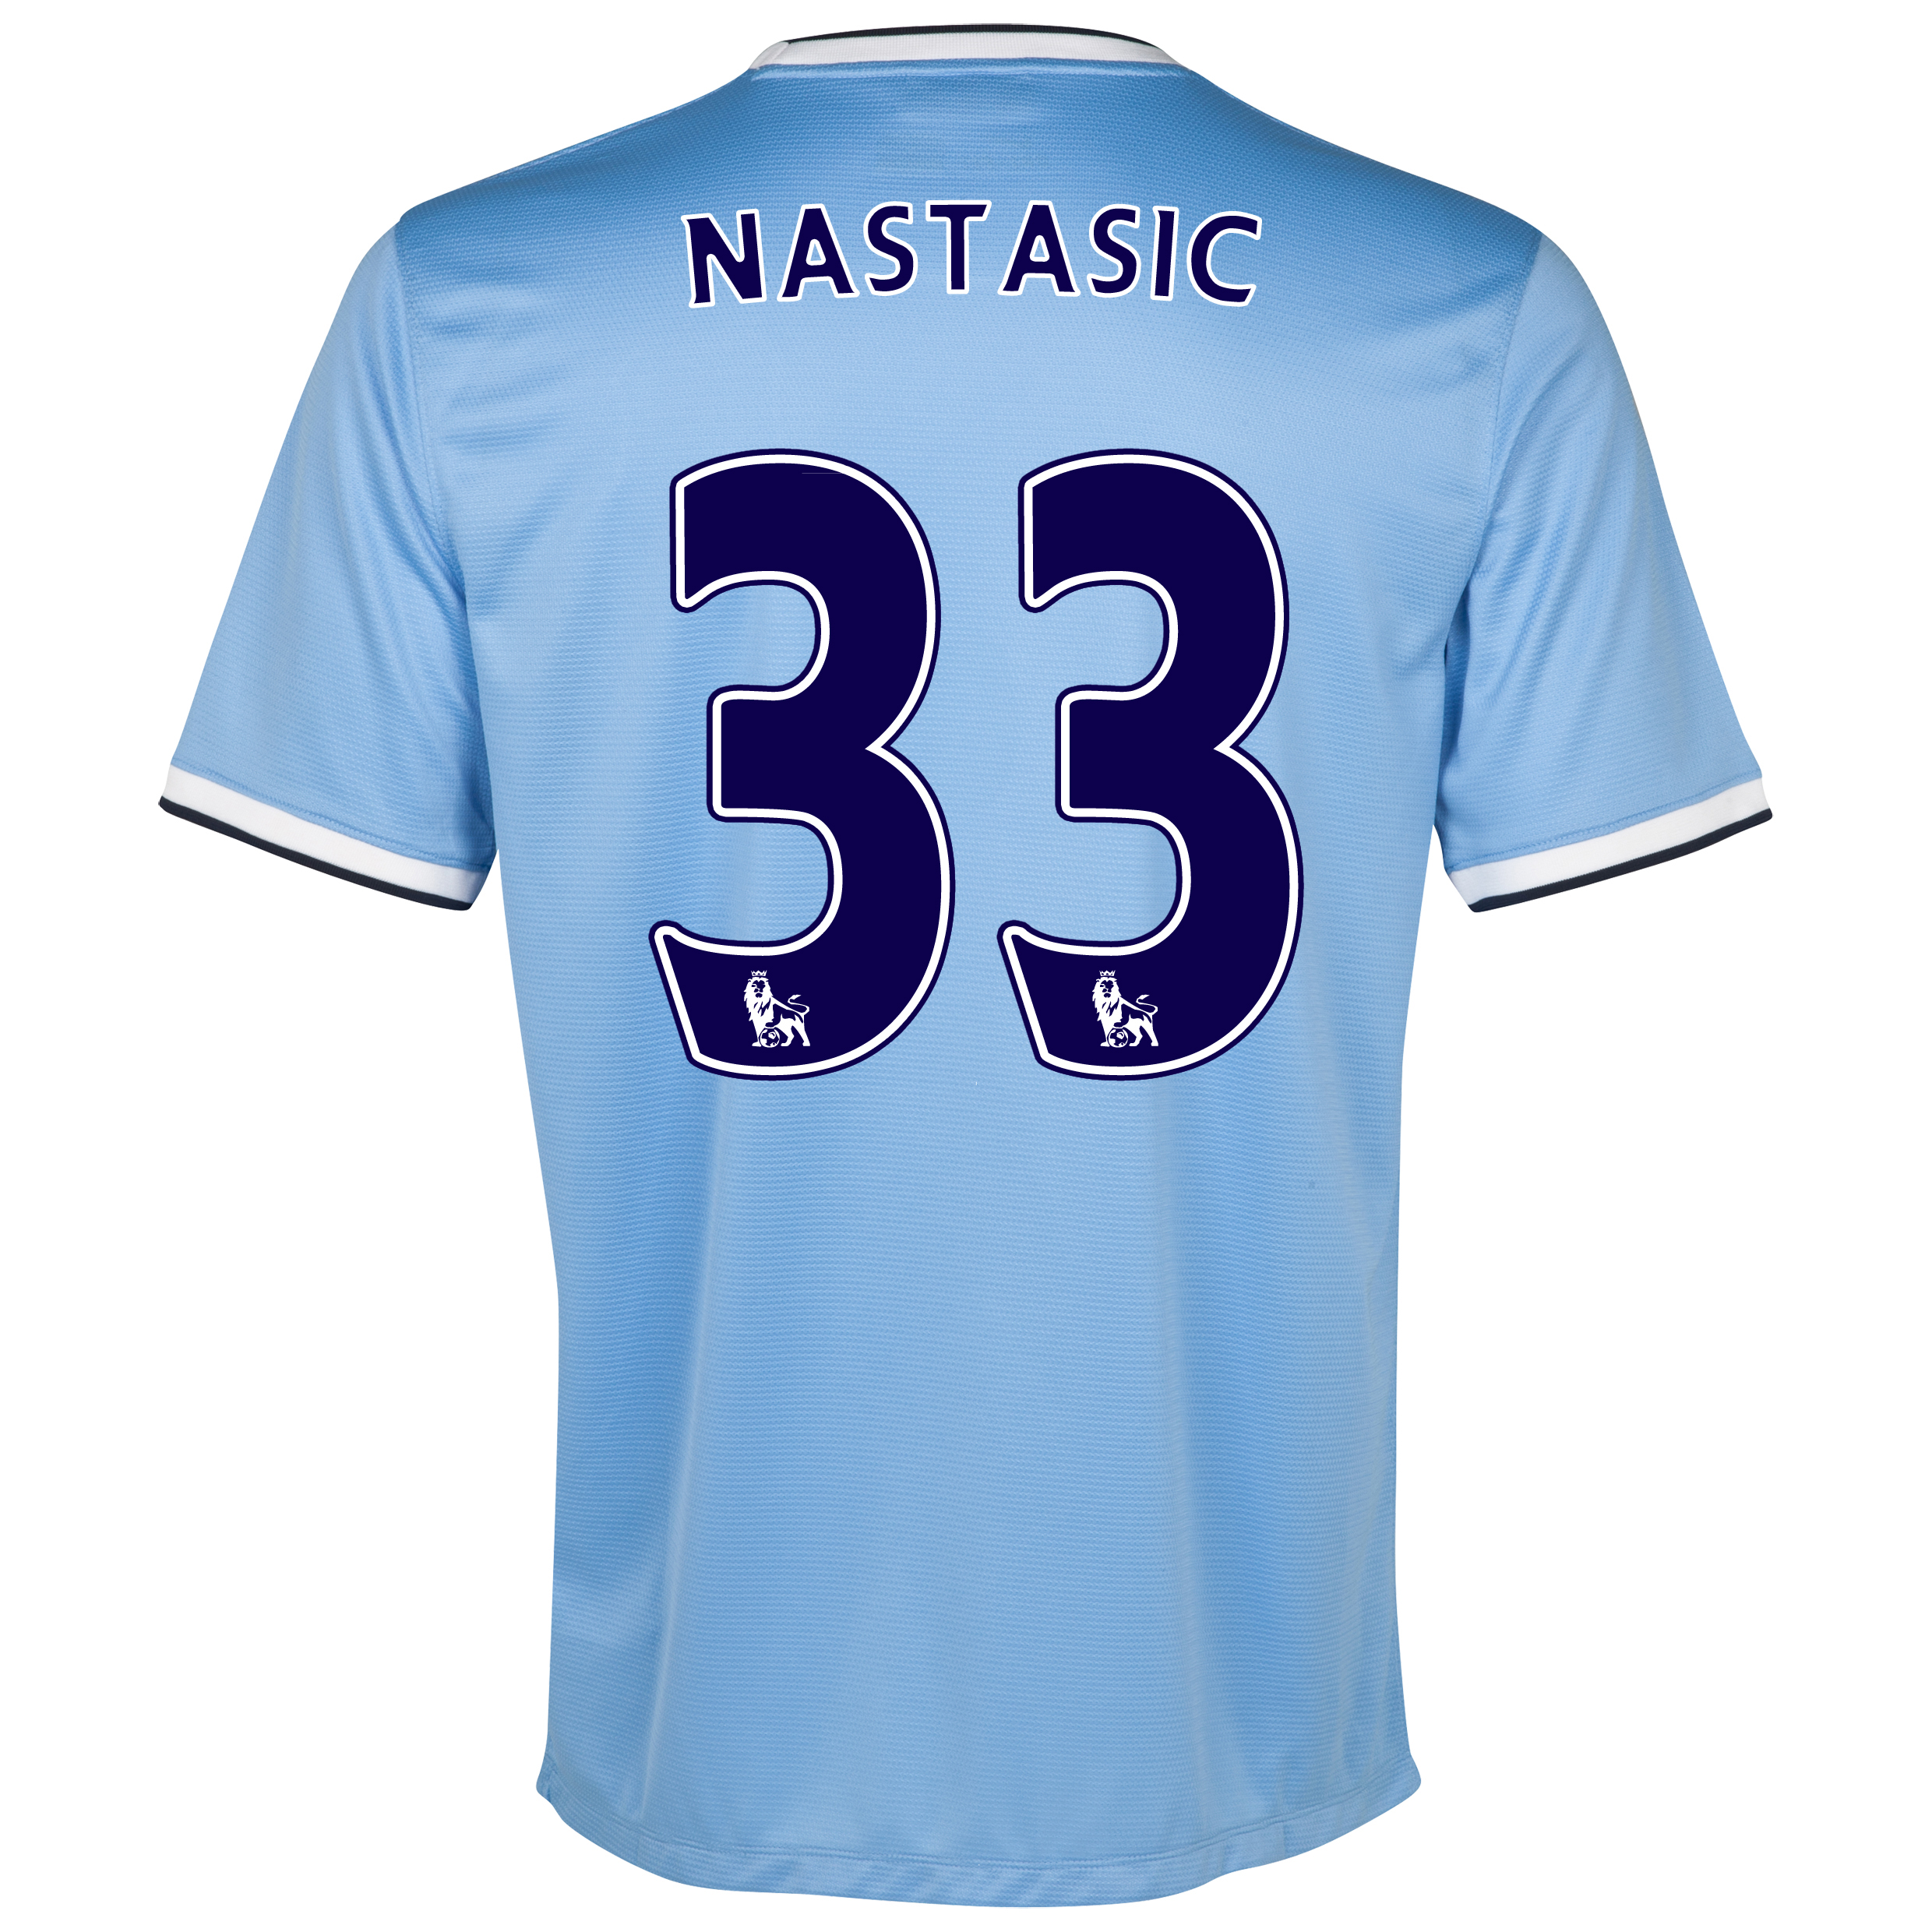 Manchester City Home Shirt 2013/14 - Womens with Nastasic 33 printing